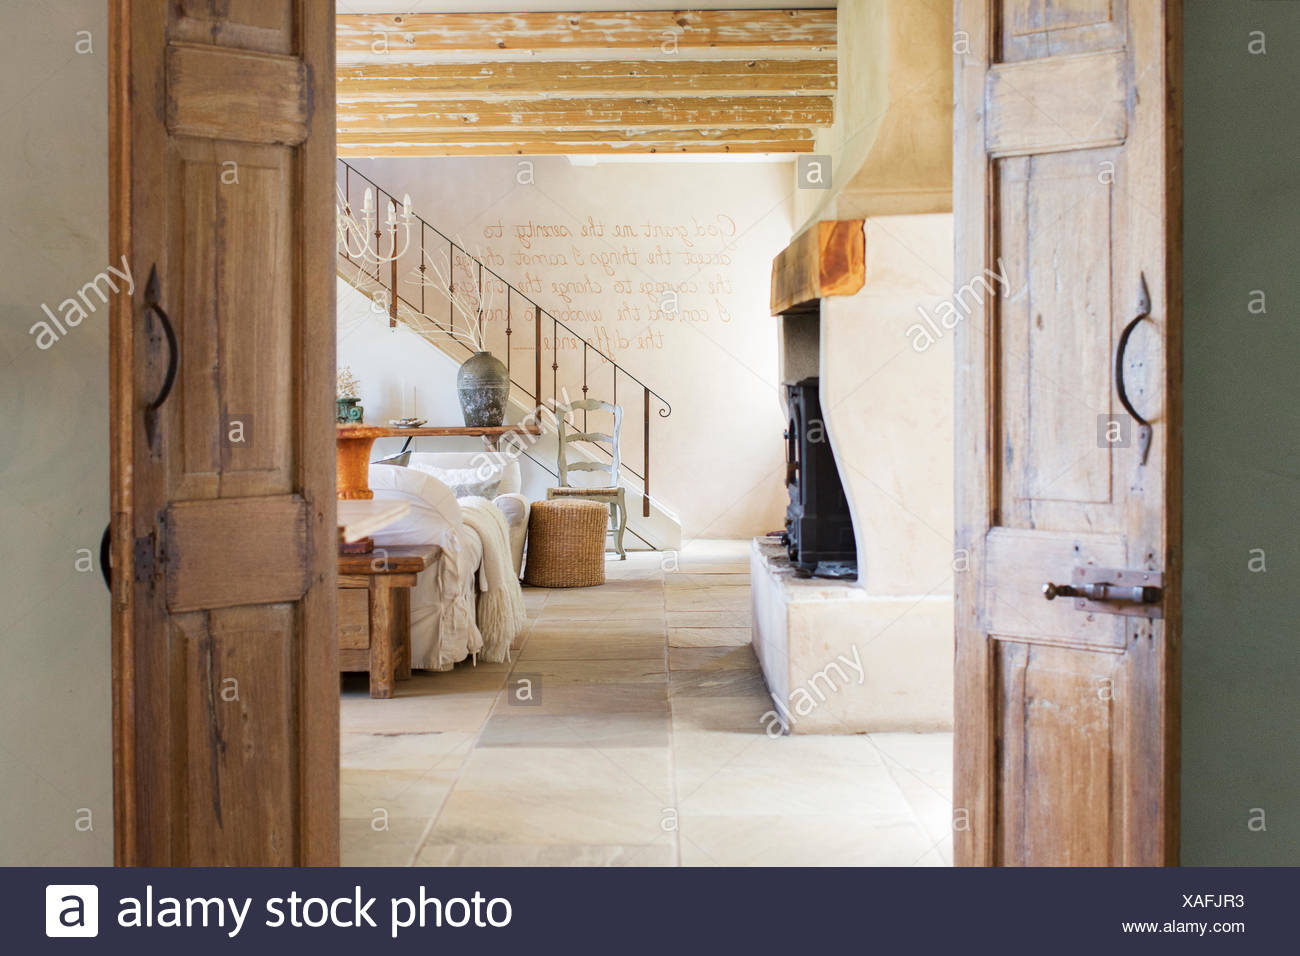 Living room in rustic house - Stock Image